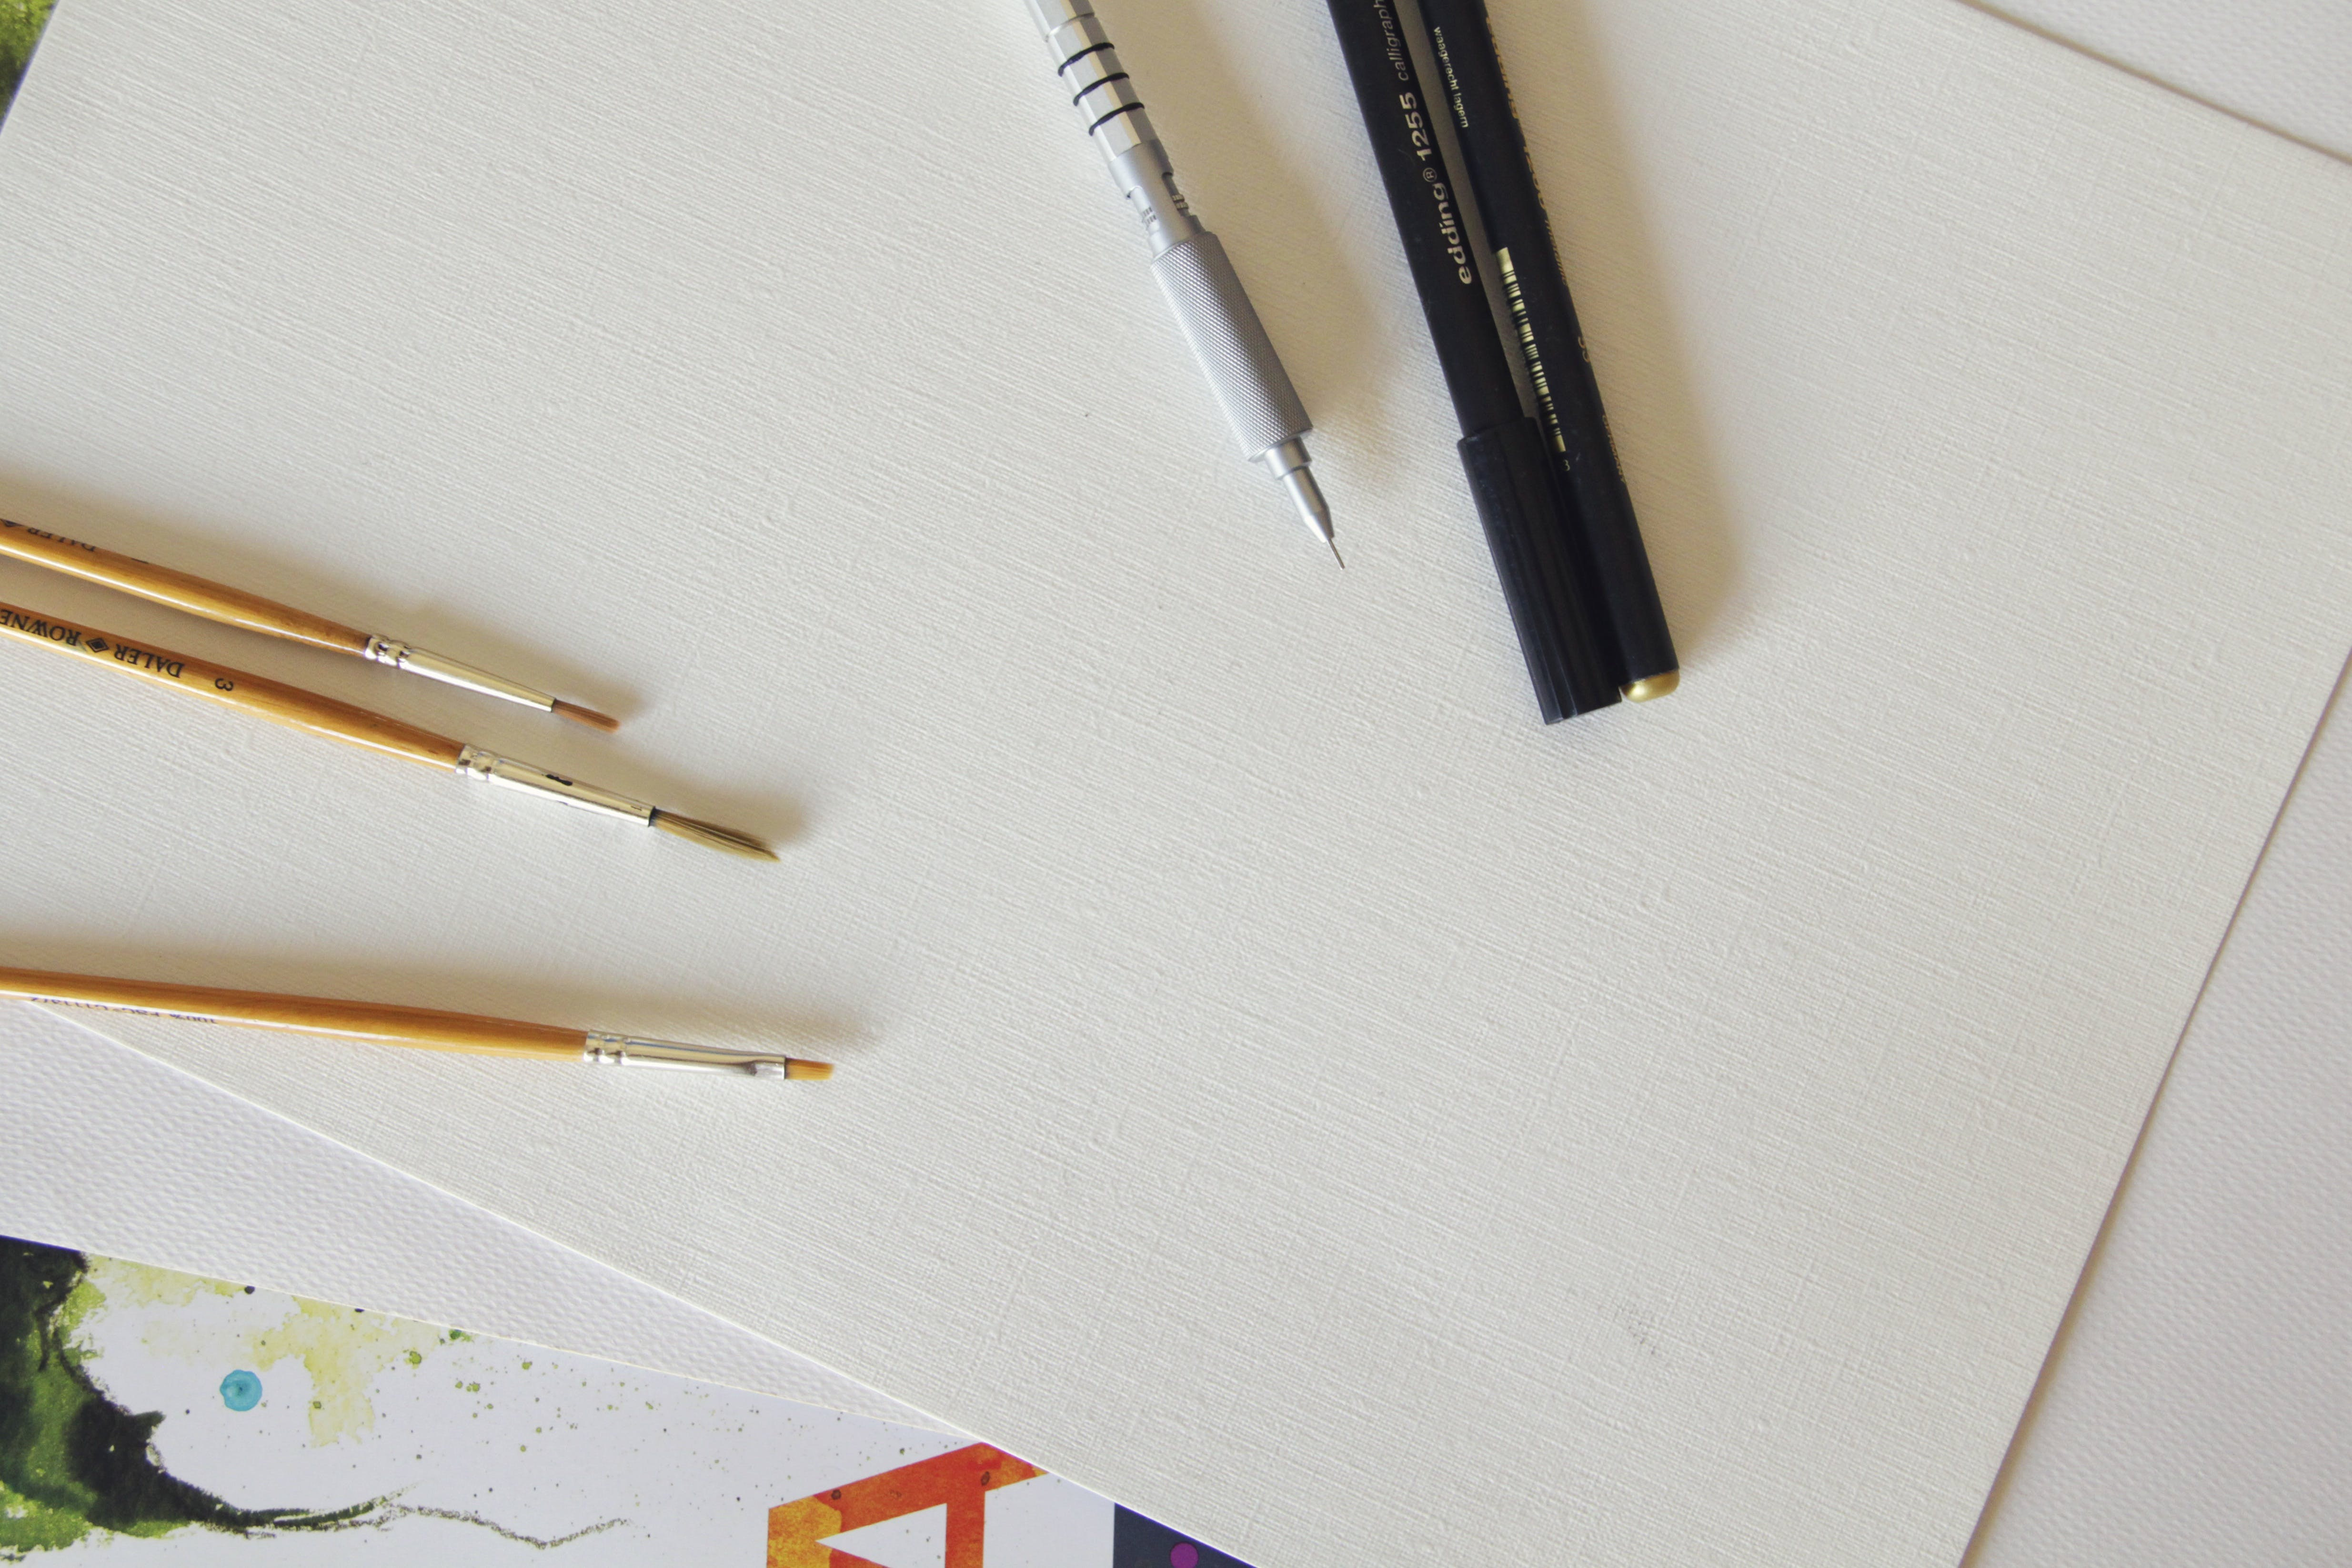 Free stock photo of pen, writing, pencil, table